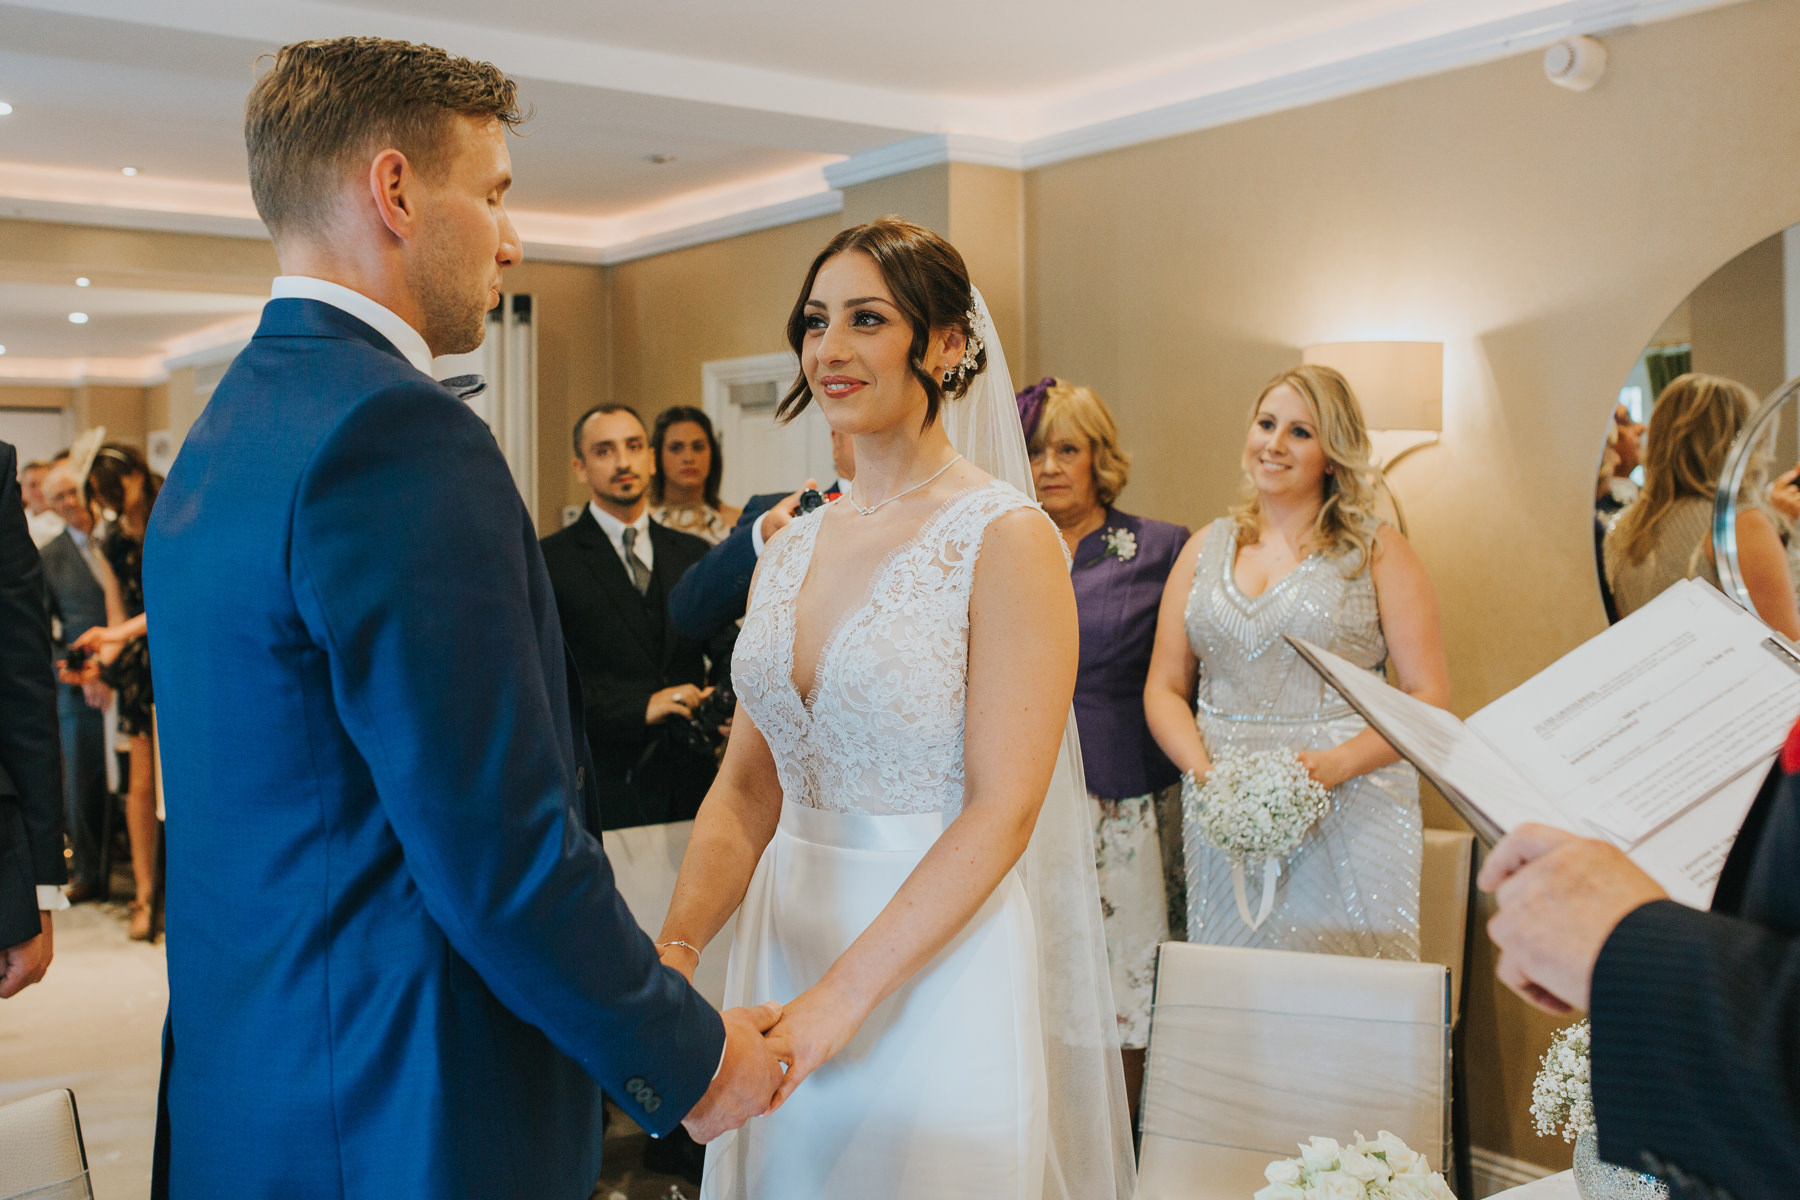 Richmond The Bingham Wedding Photographer London--groom bride ceremony exchanging rings-CRL-155.jpg